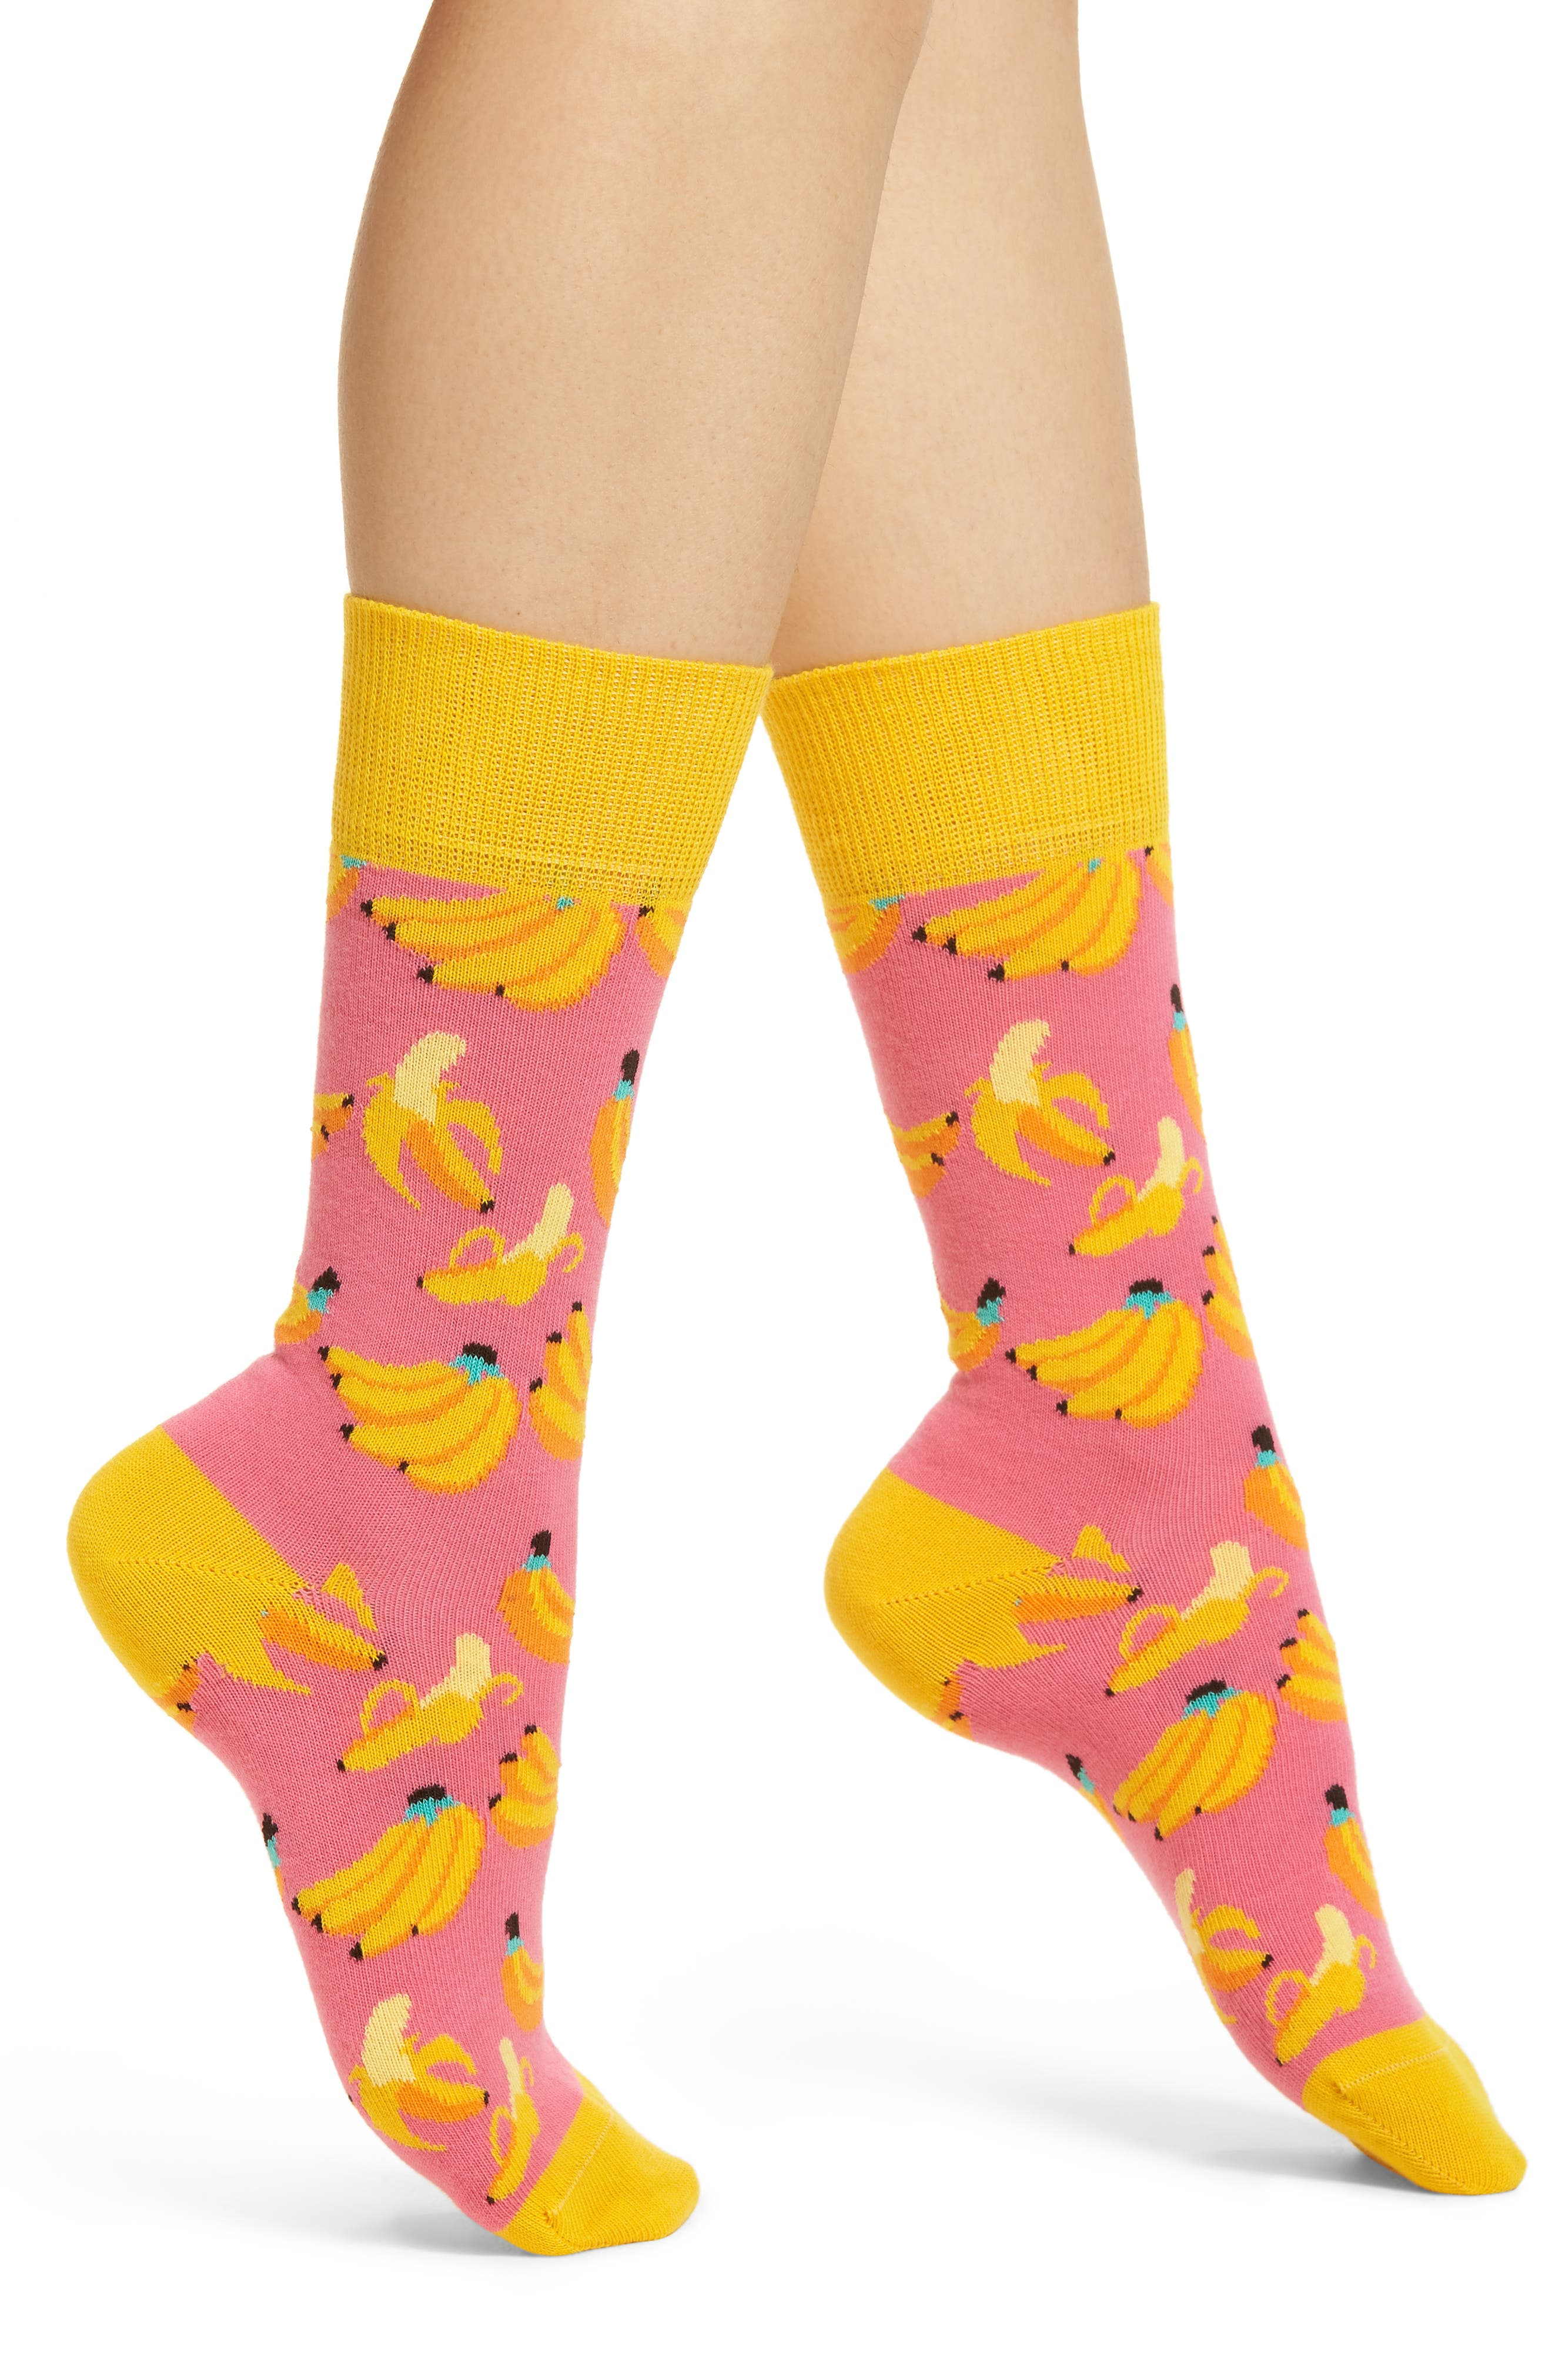 Banana Socks,                             Main thumbnail 1, color,                             Pink